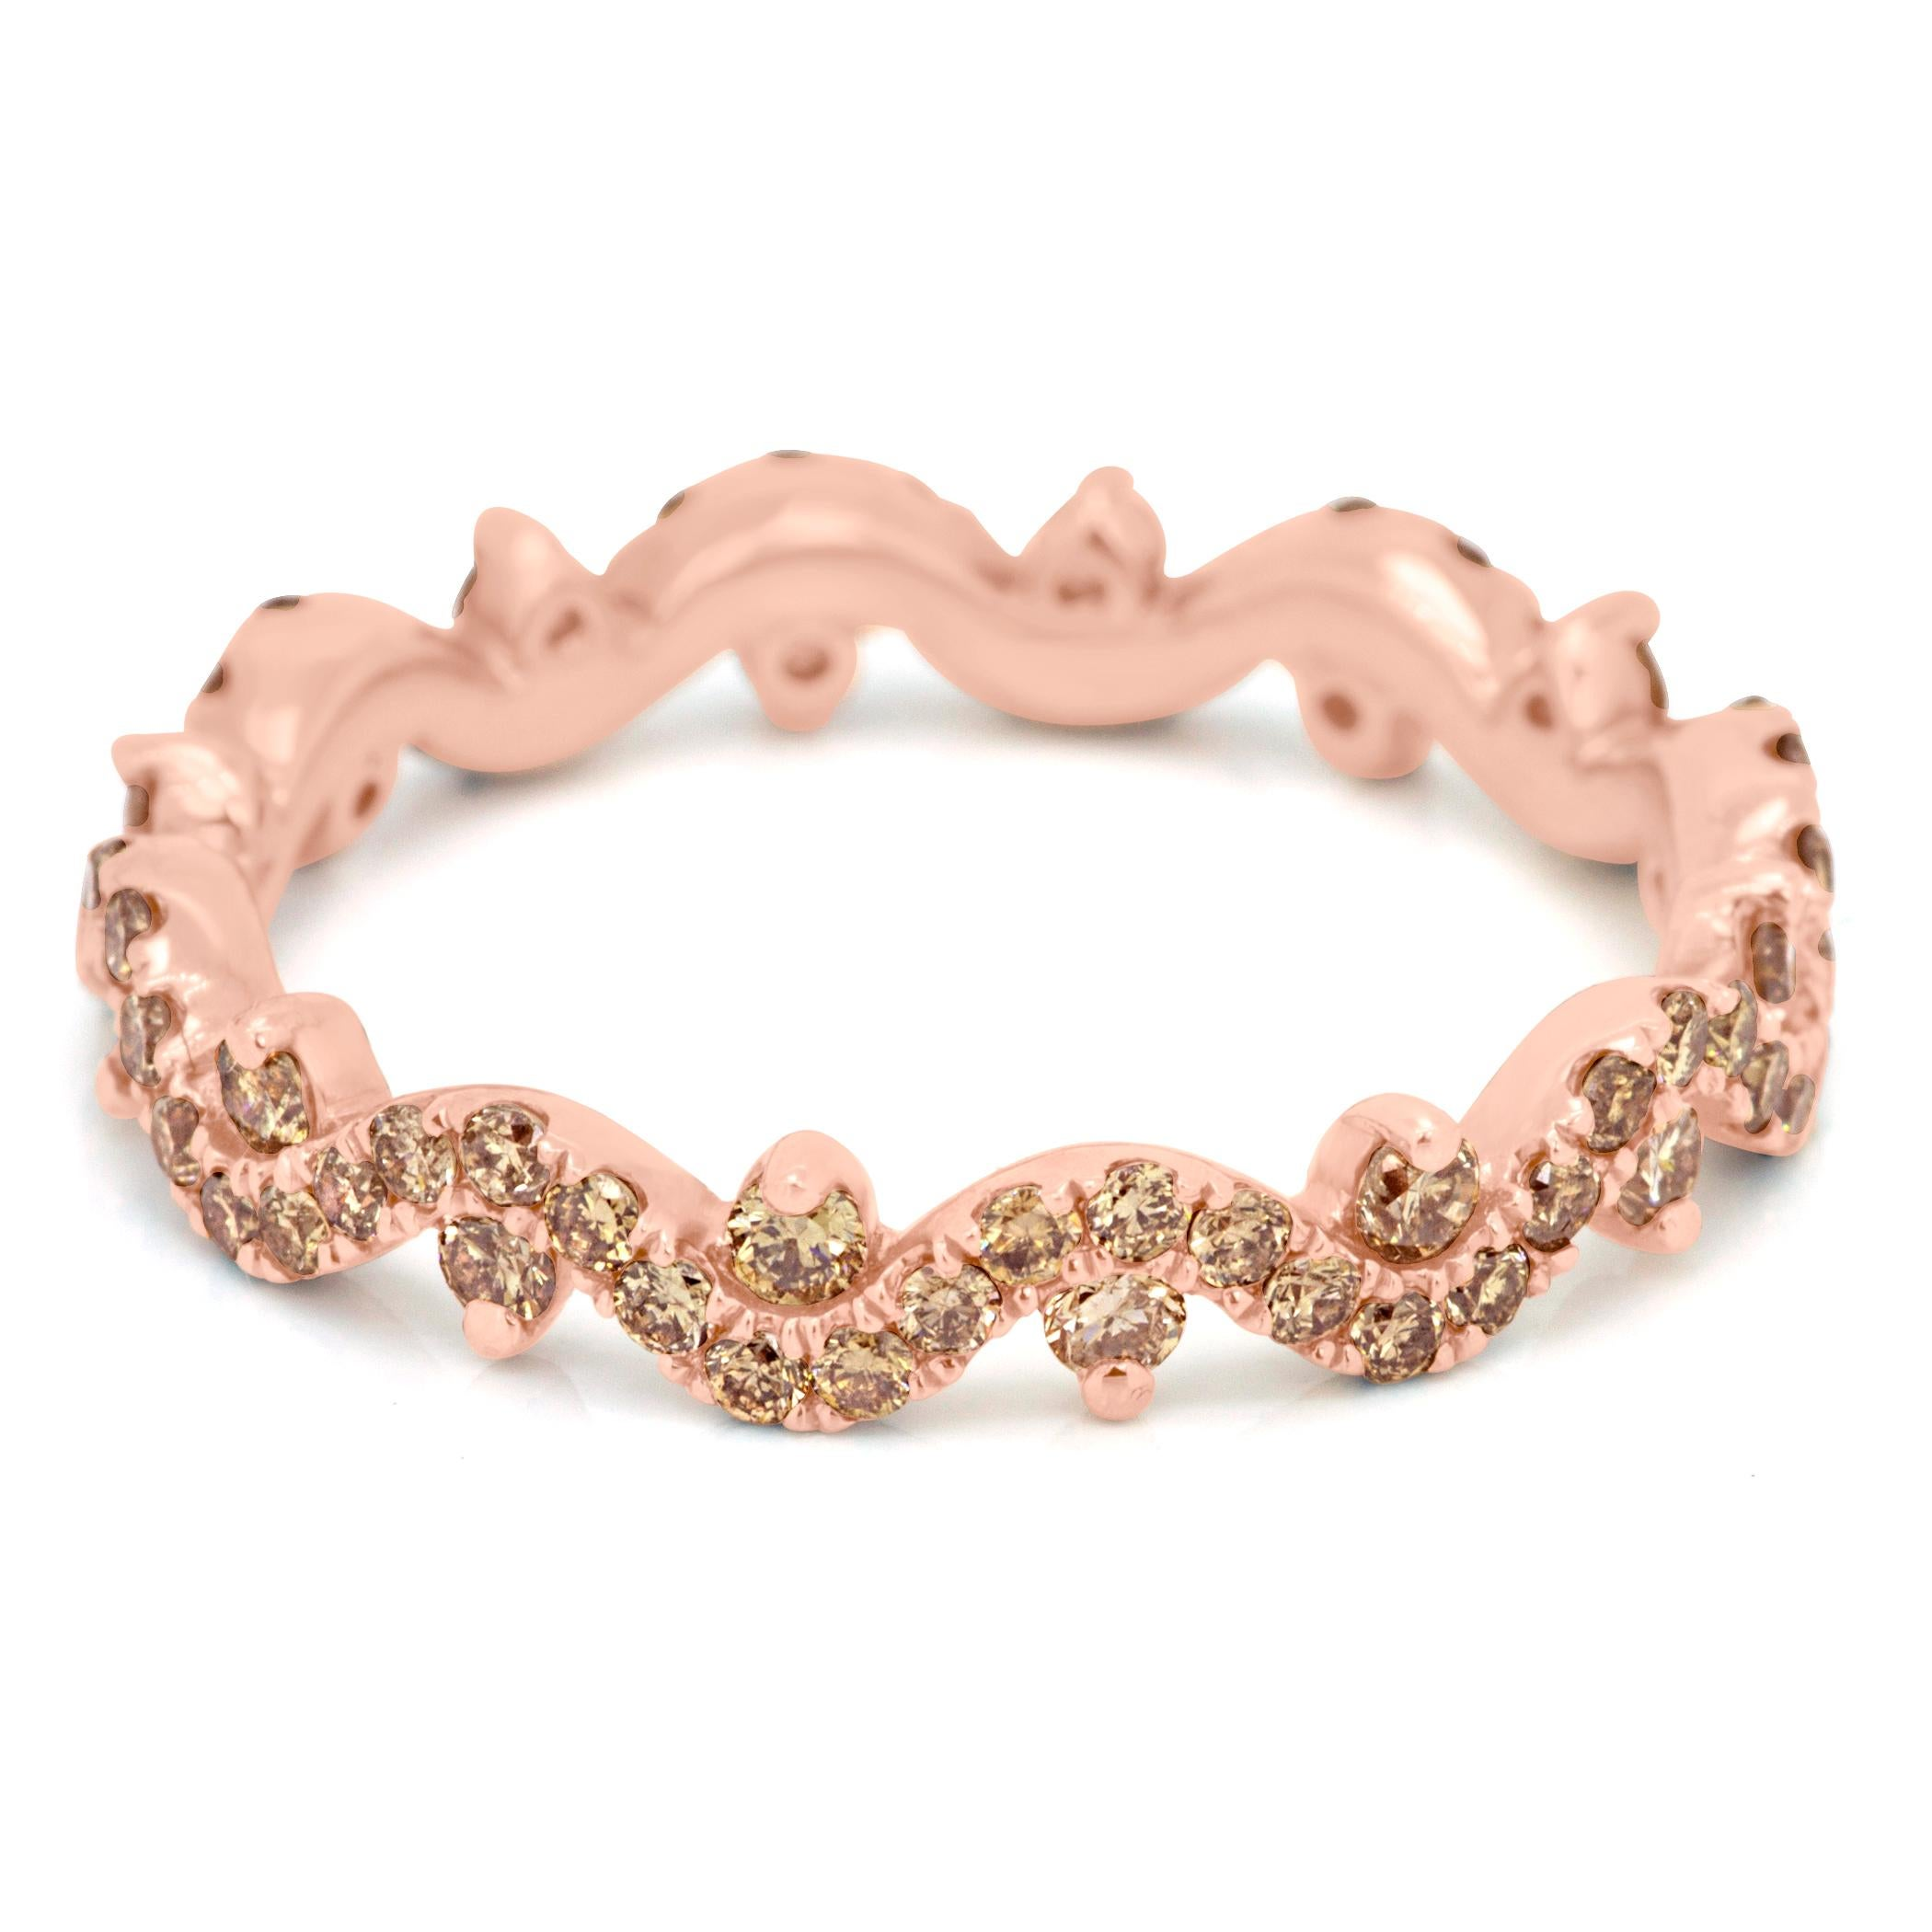 014ec92fd18 Champagne Diamond Rose Gold Stackable Fashion Cocktail Band Ring For Sale  at 1stdibs